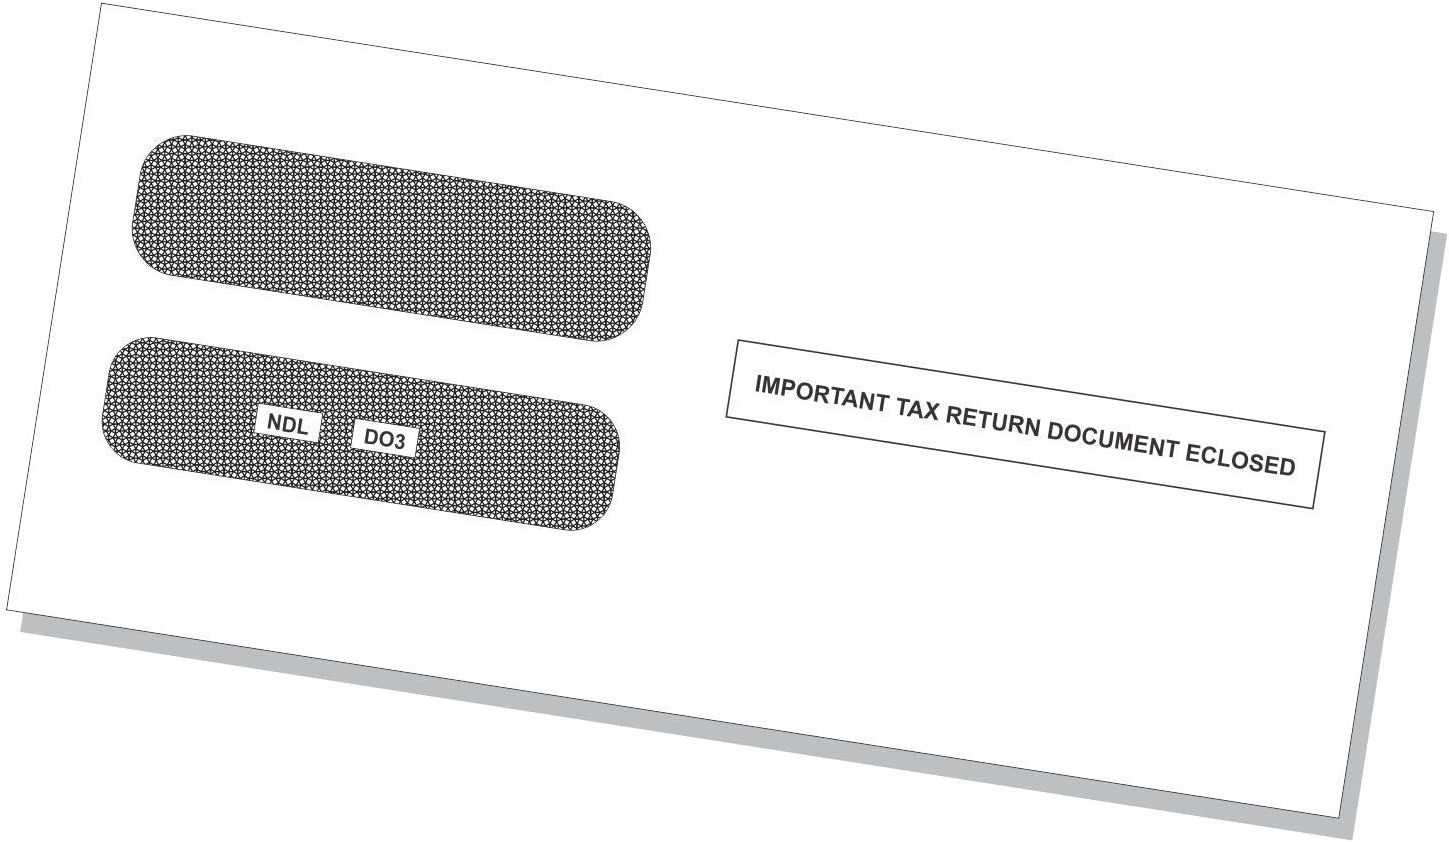 50 Sheets Printed Both Sides /& Envelopes Horizontal Format 2019 3 UP Laser W-2 Forms Employee Copy